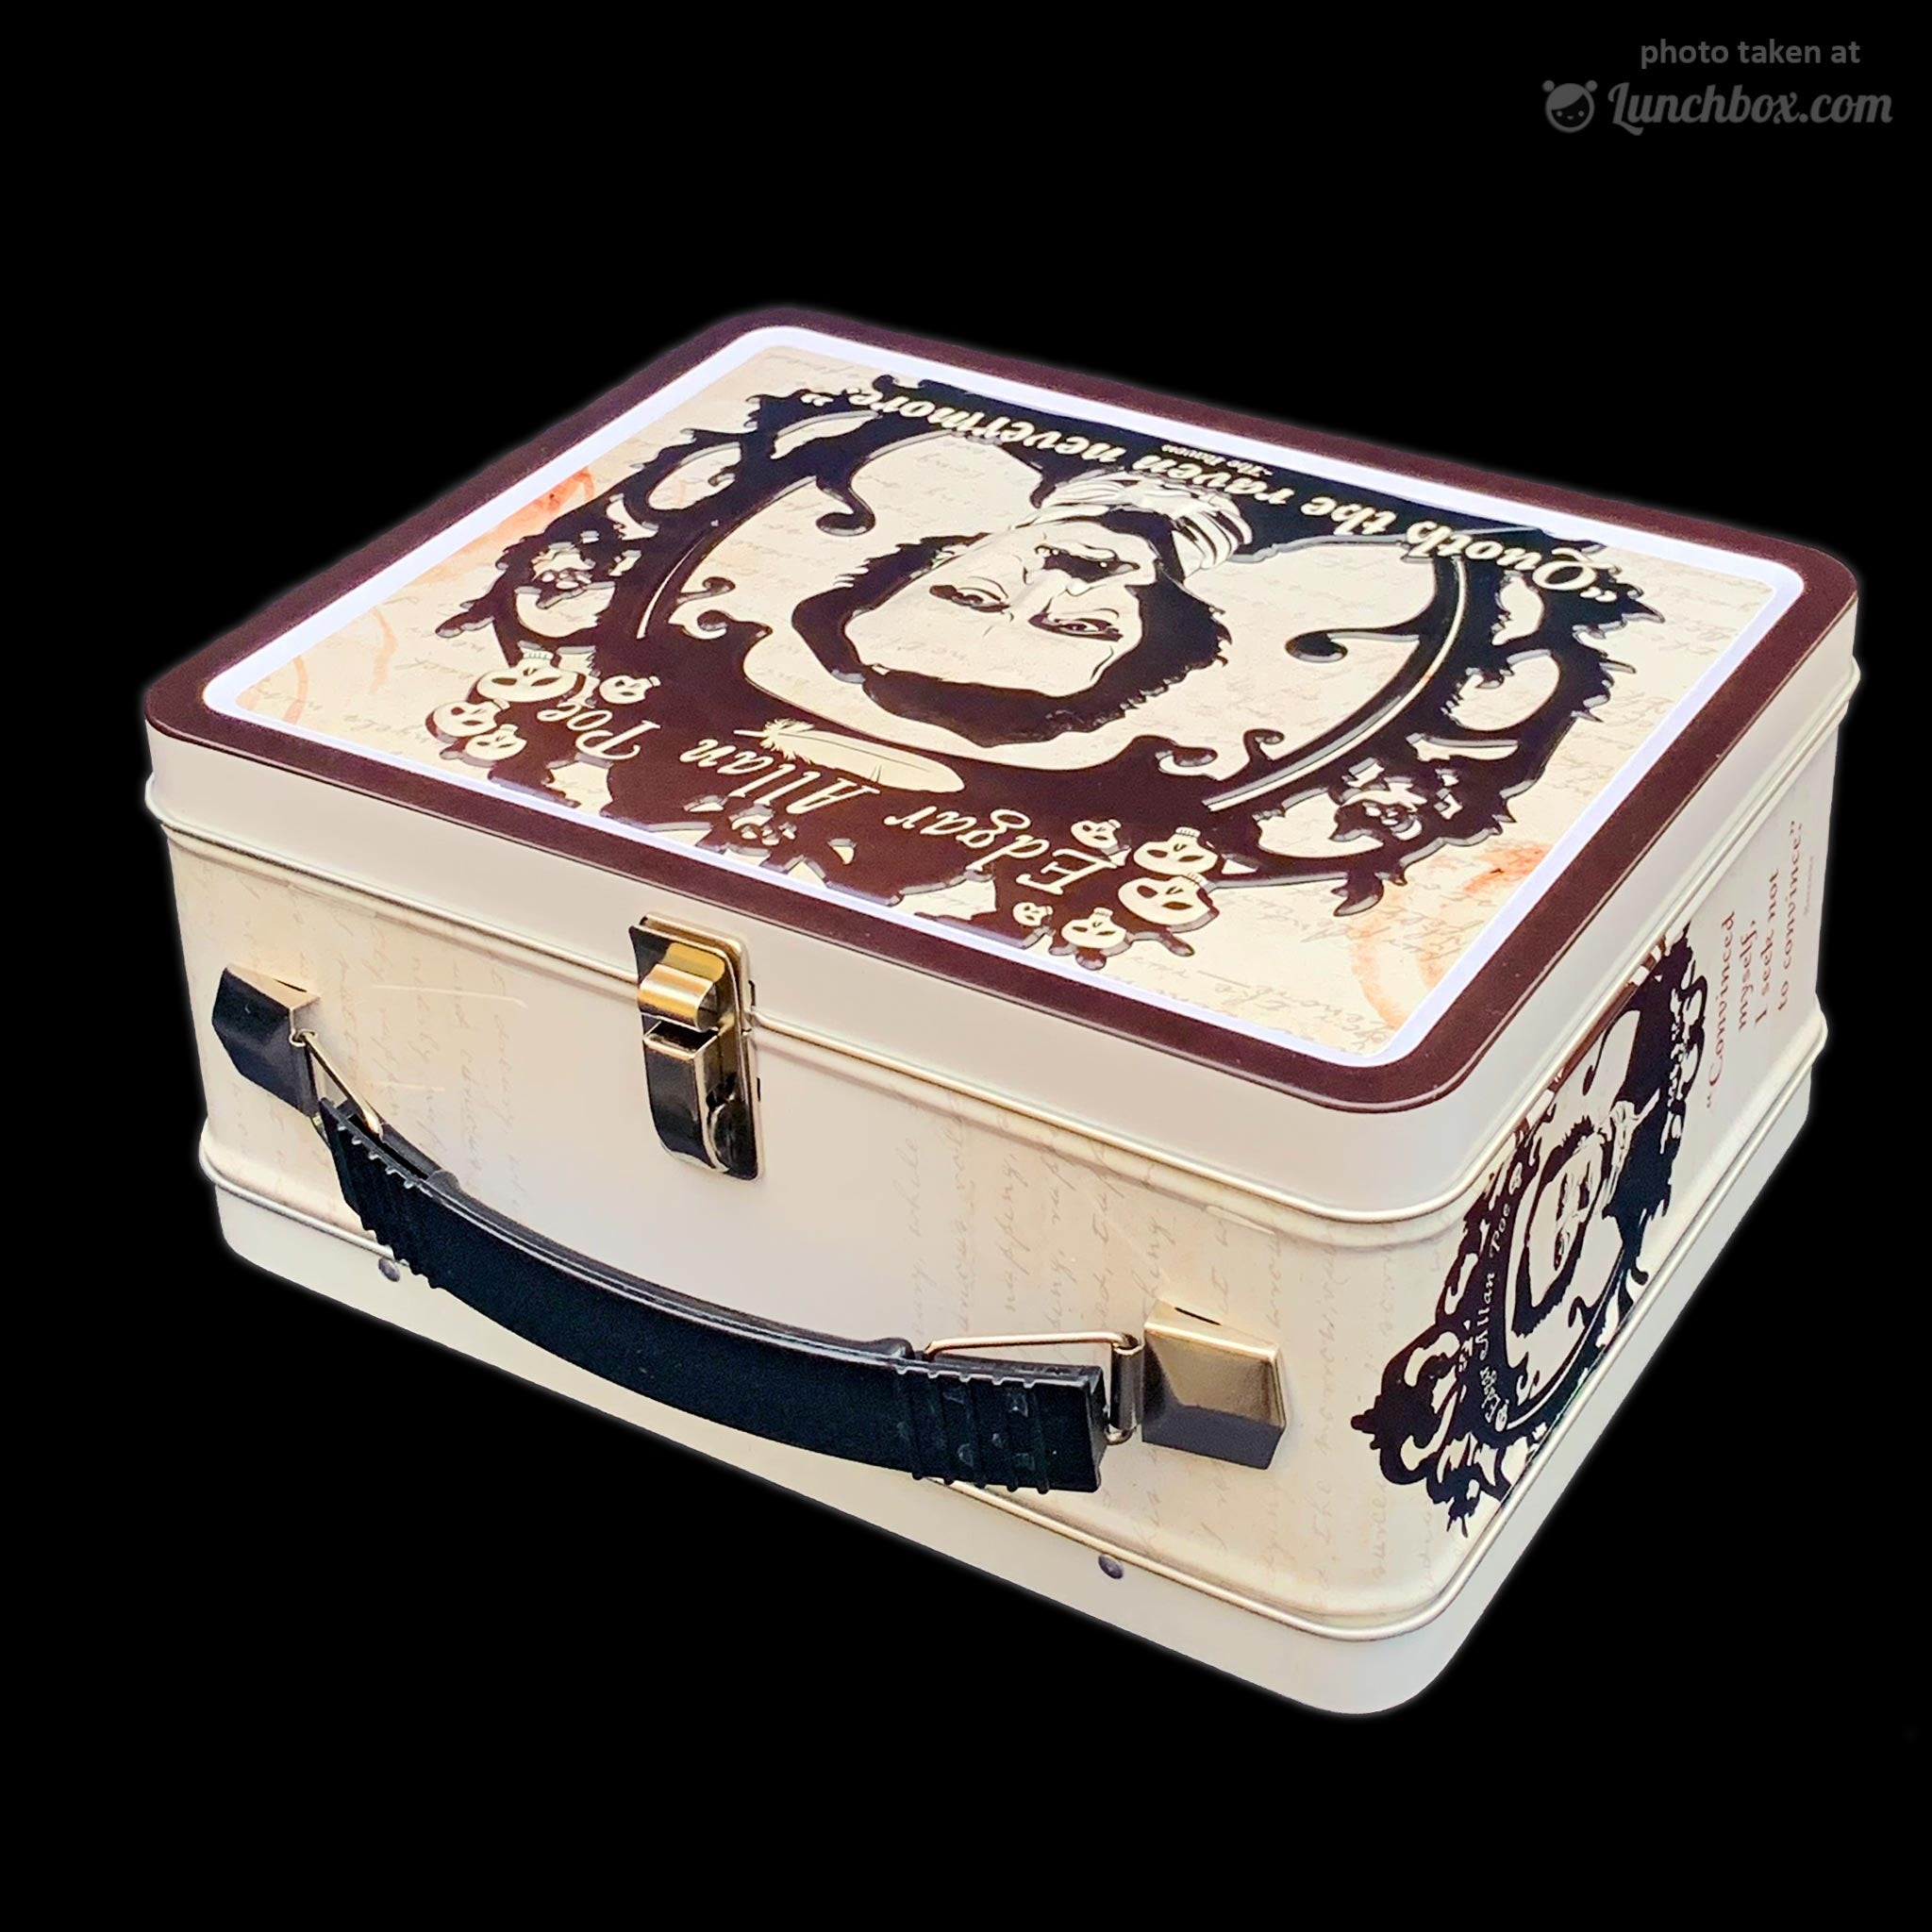 Edgar Allan Poe Lunch Box